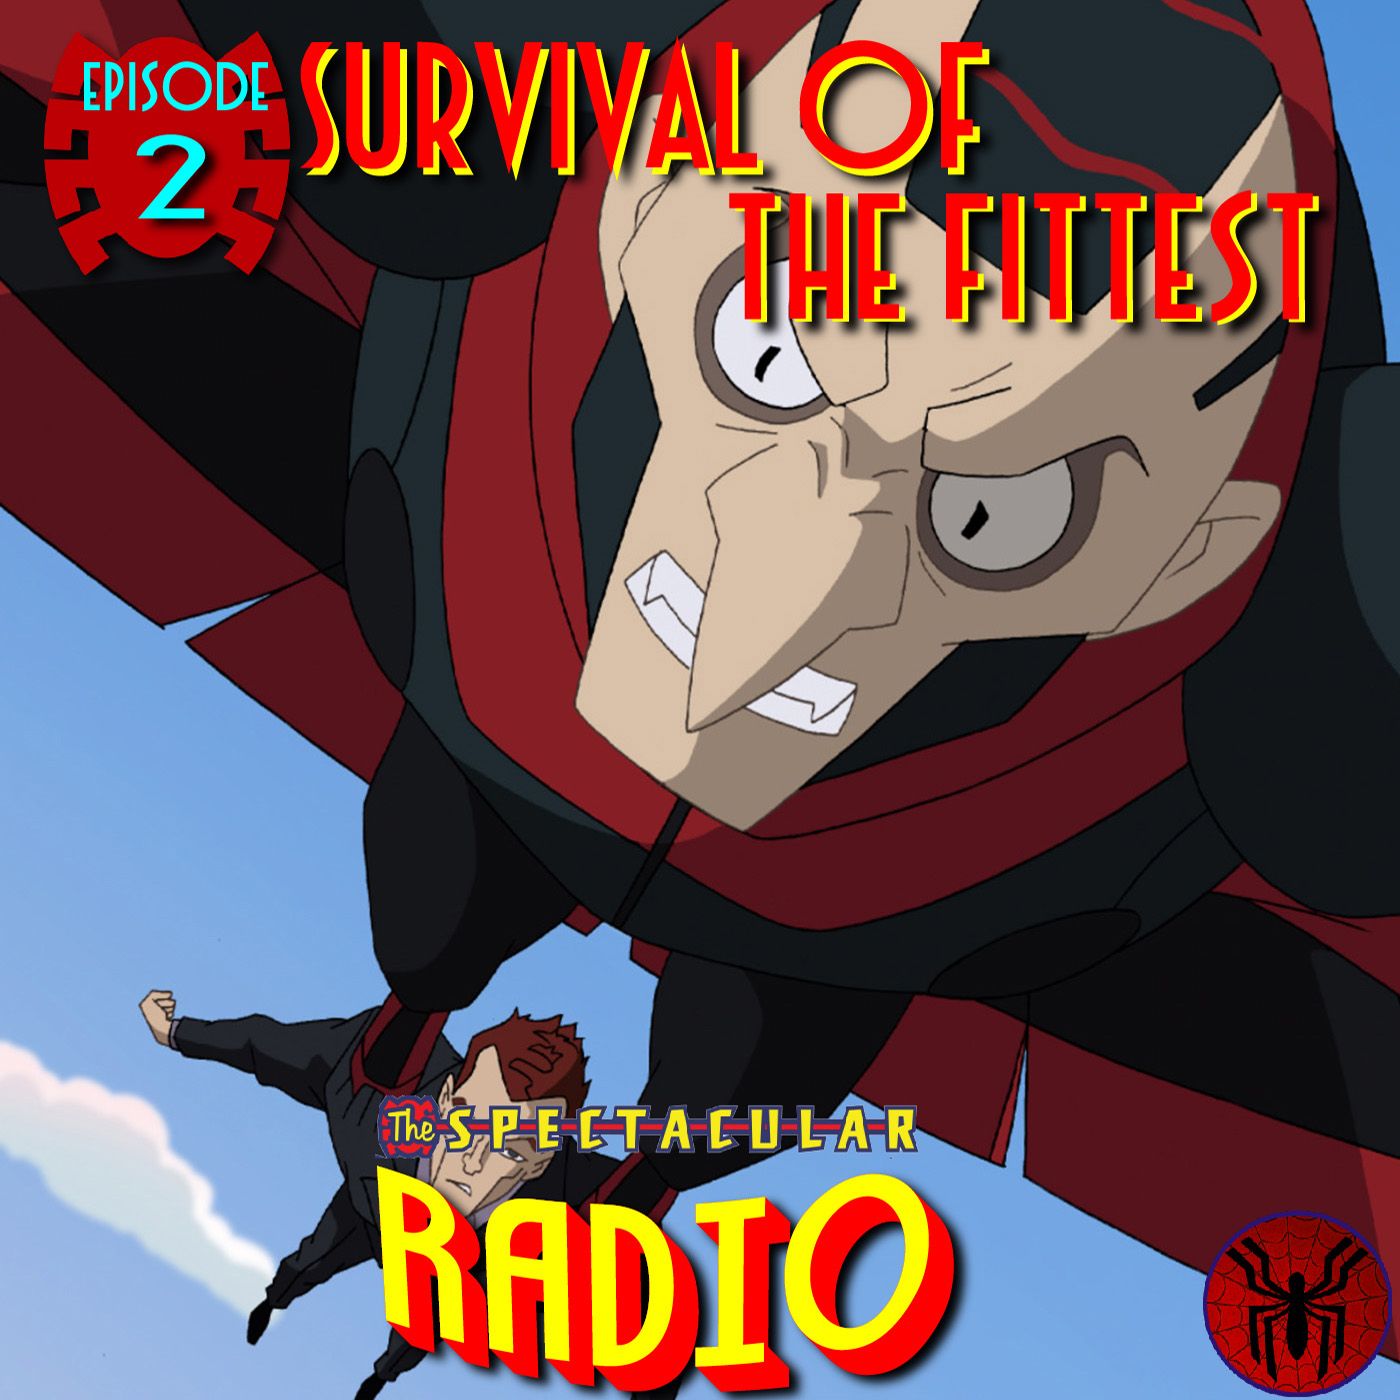 Spectacular Radio Episode 2: Survival of the Fittest Fan-Panel